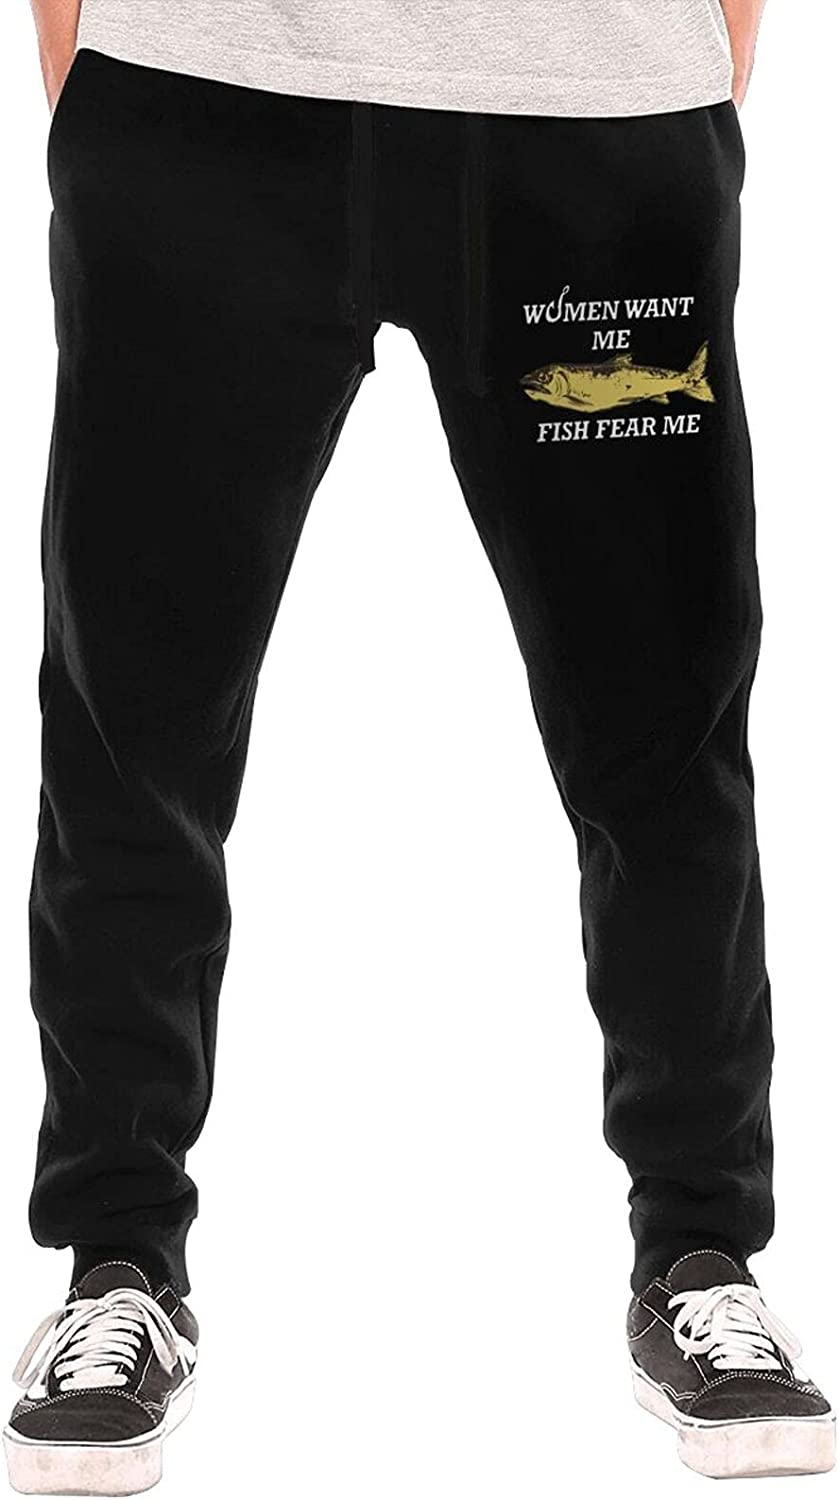 Women Want Me Fish Fear Sweatpant Joggers Pants Mens Ranking TOP1 Manufacturer direct delivery 3D